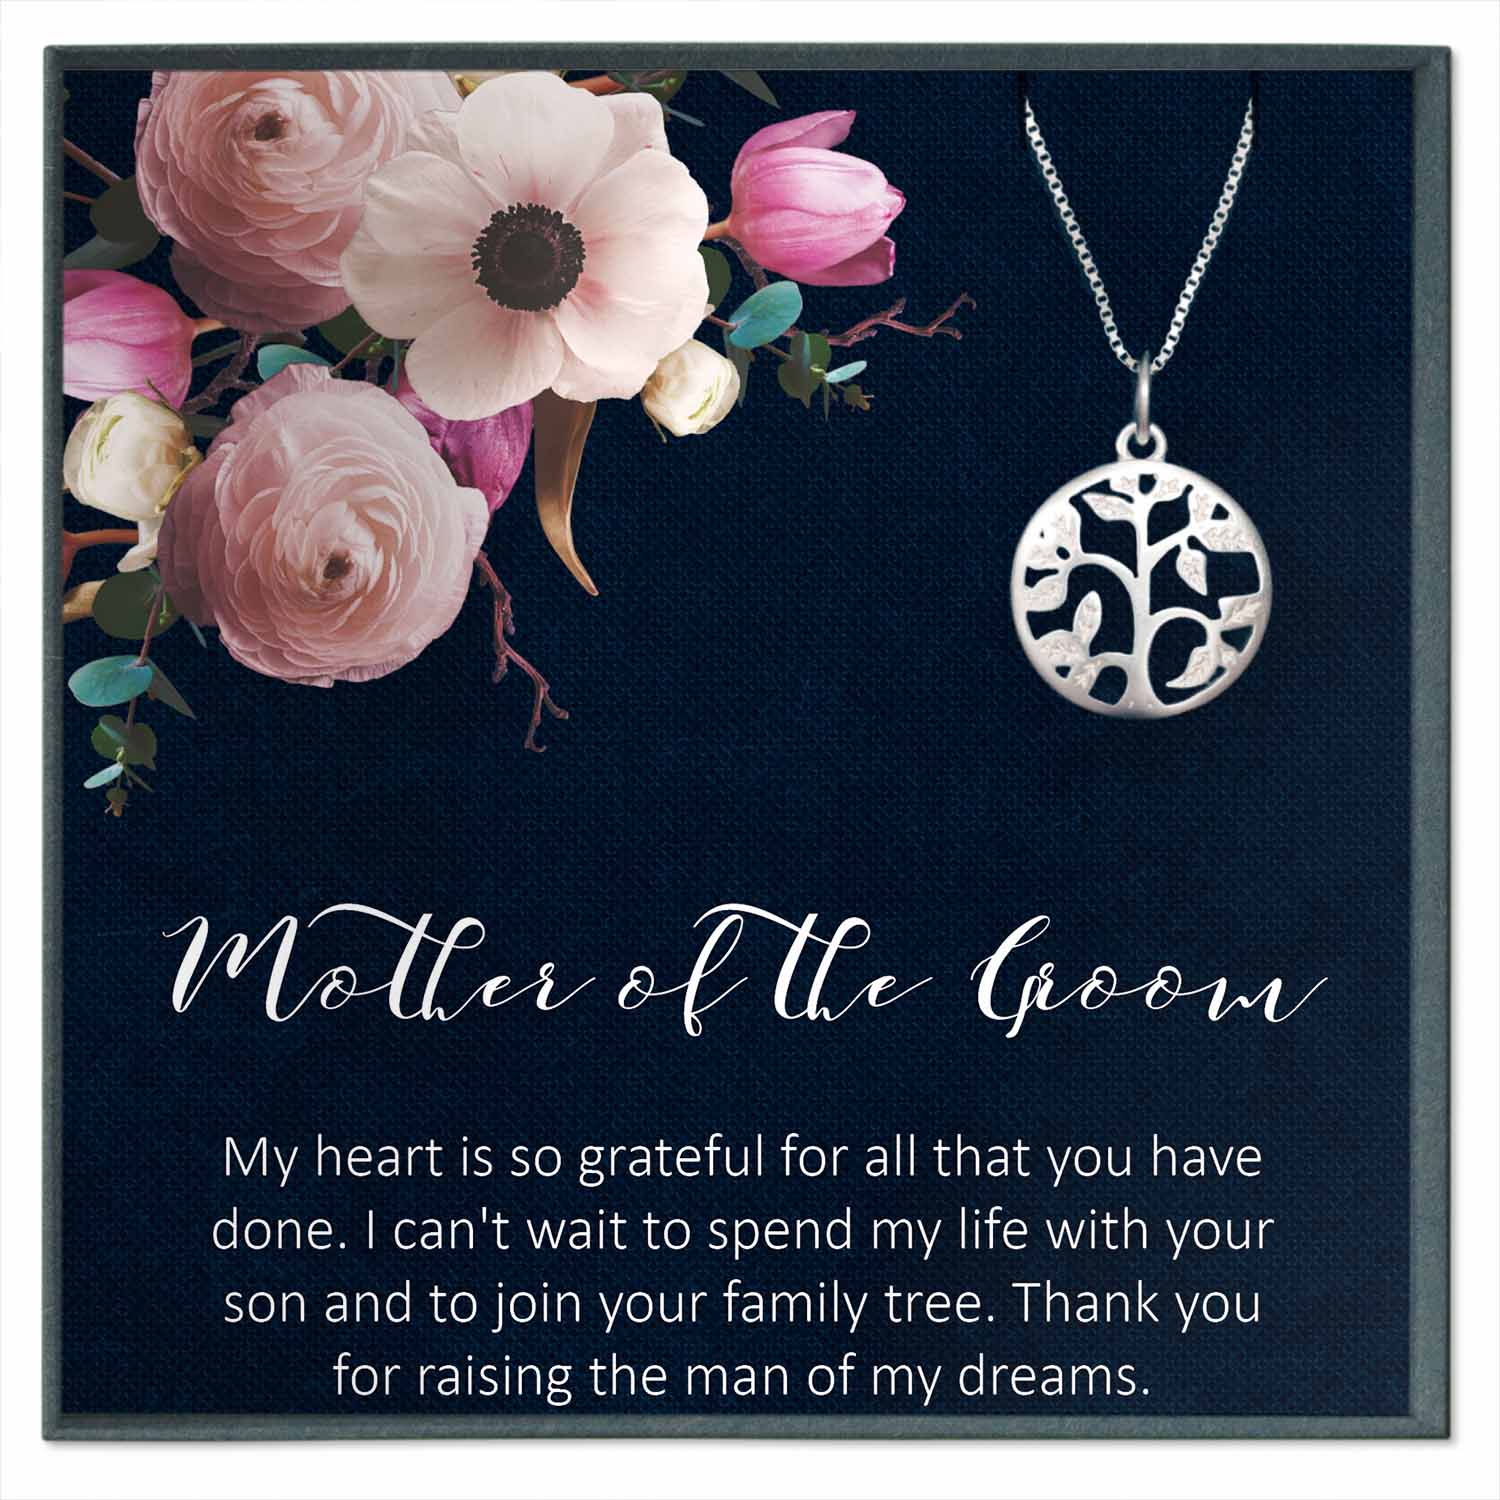 Mother of the Groom Necklace from Bride, Mother in Law Necklace Gift